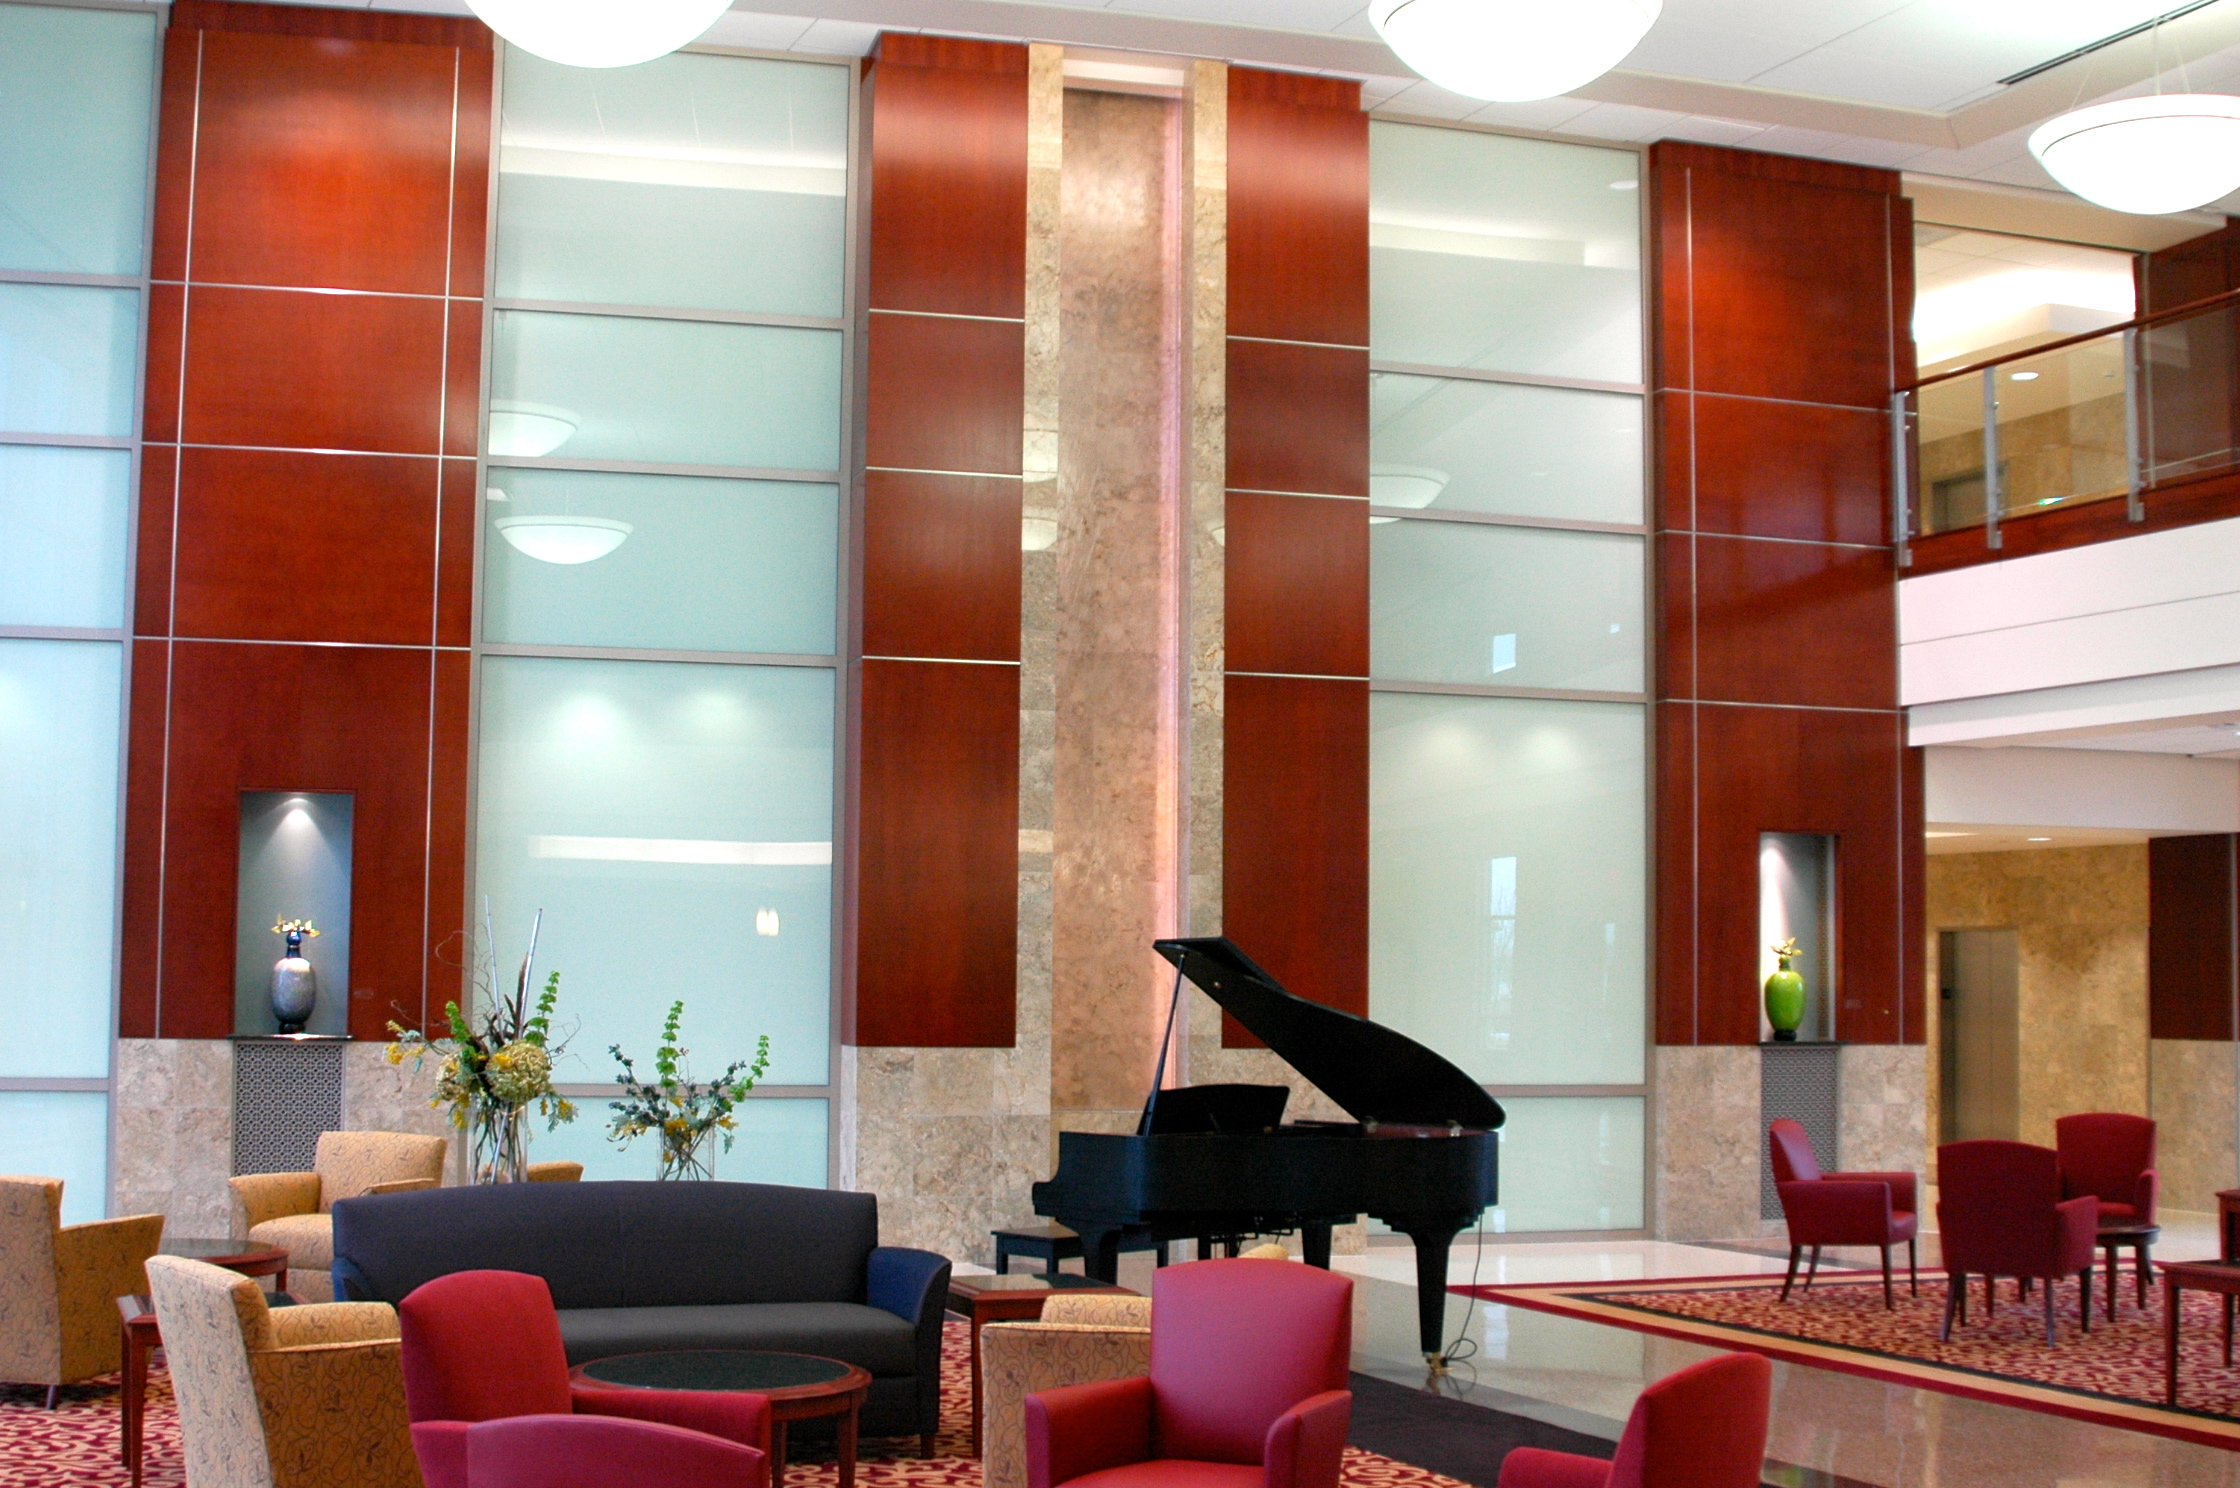 Architectural Panels in Hospital Lobby  Vaughn Interior